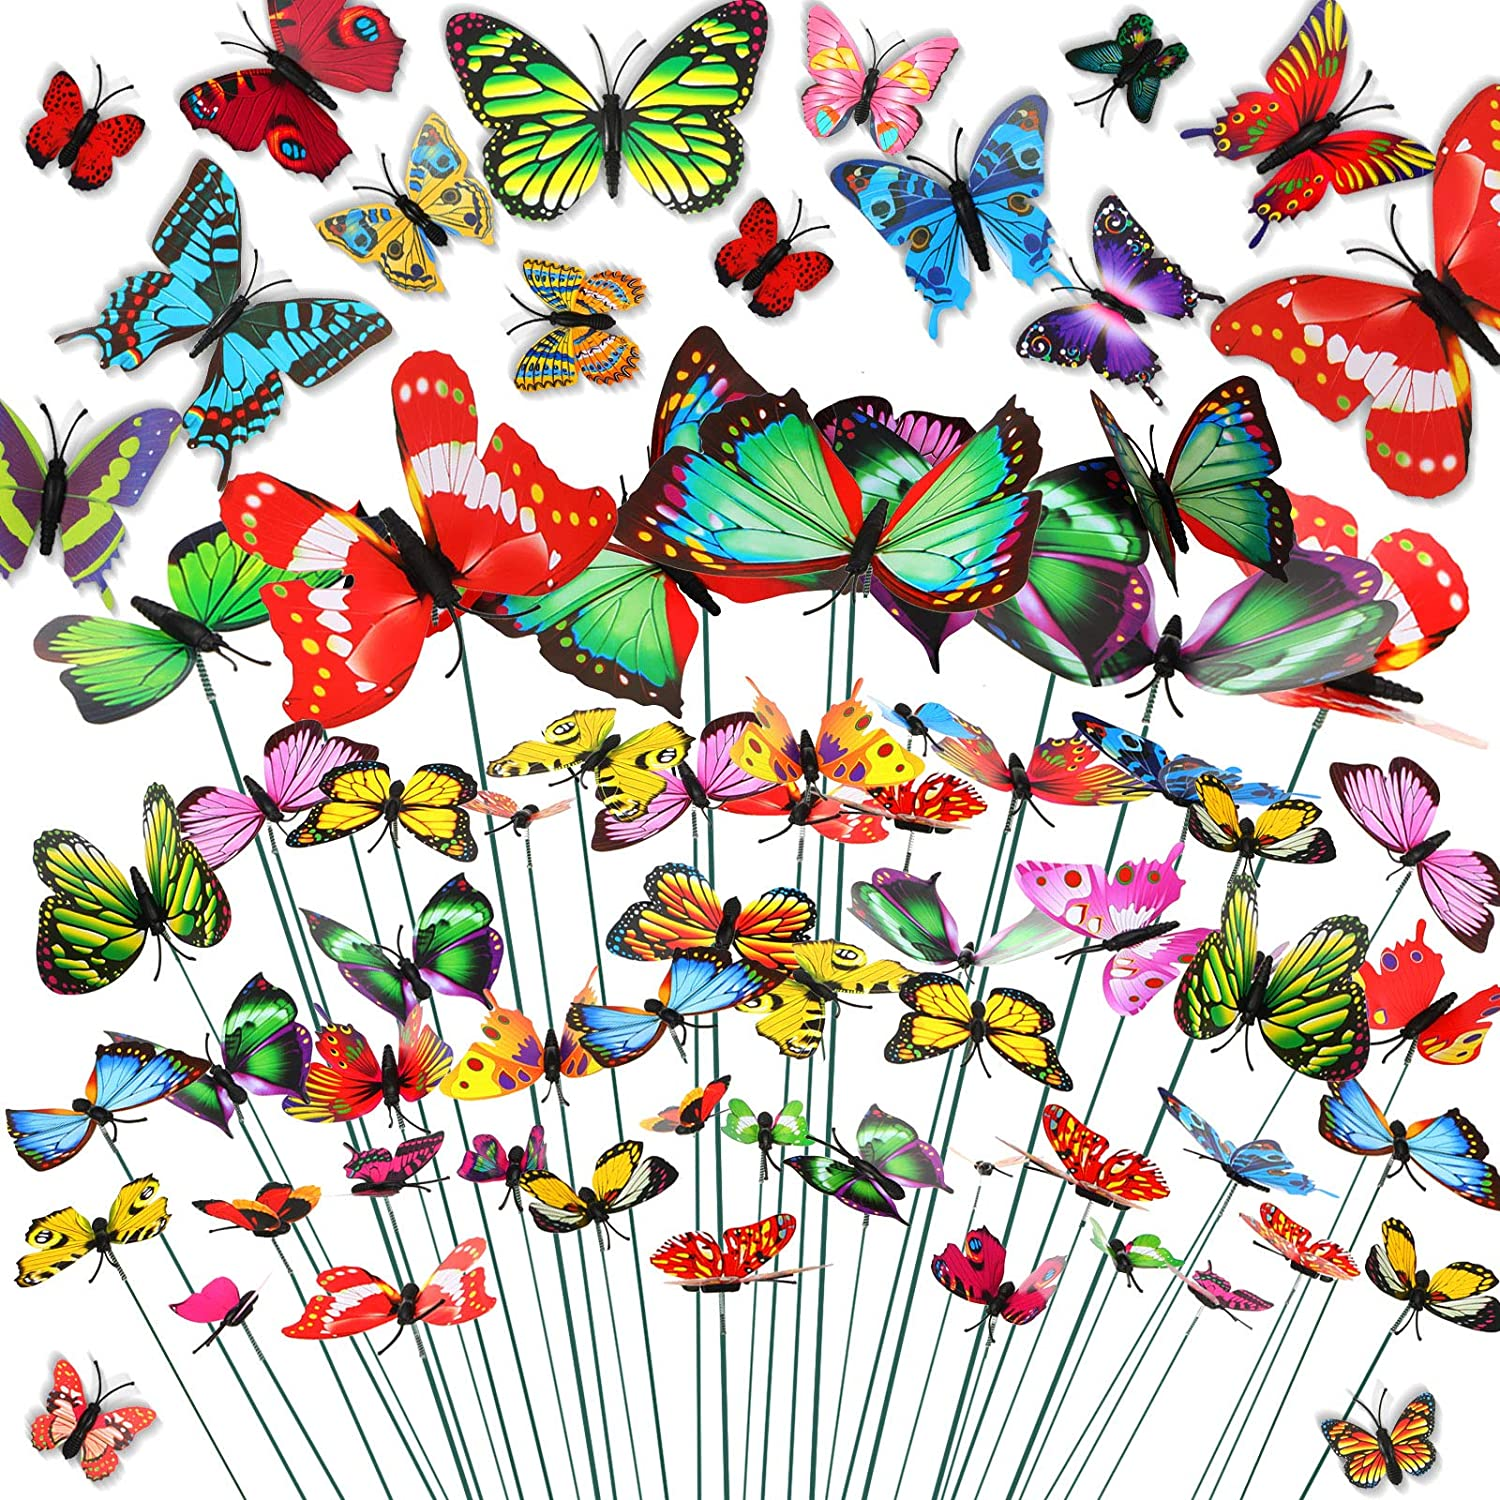 WILLBOND 120 Pieces Garden Butterfly Stakes Butterfly Stake Ornaments Waterproof Butterfly Decorations Butterflies Yard Ornaments with Adhesive Glue for Outdoor Garden Home Decorations